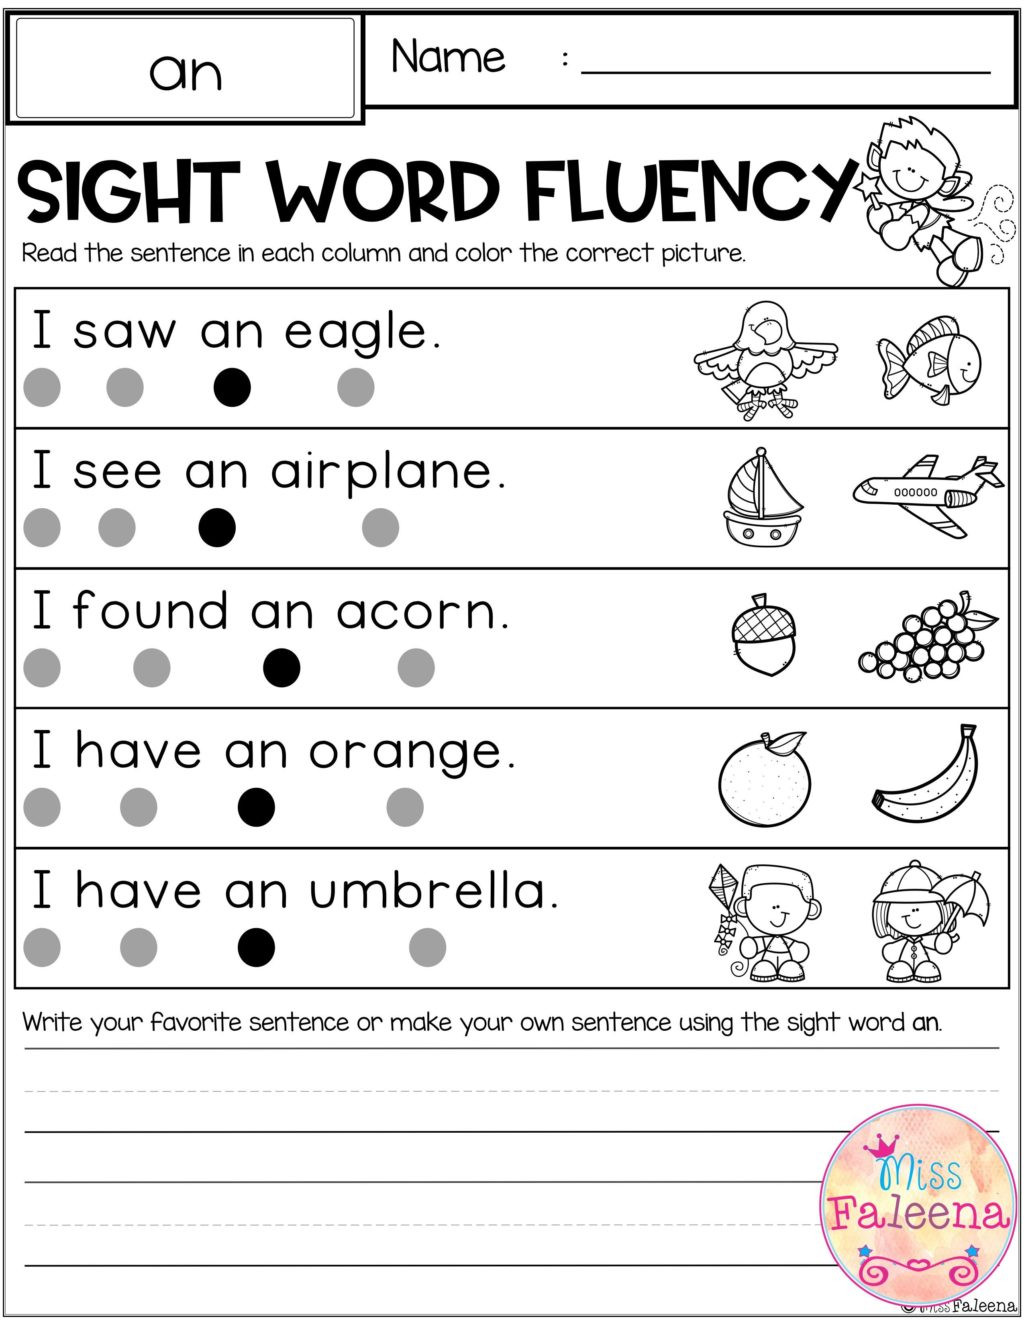 hight resolution of 1st Grade Sentence Correction Worksheets   Printable Worksheets and  Activities for Teachers